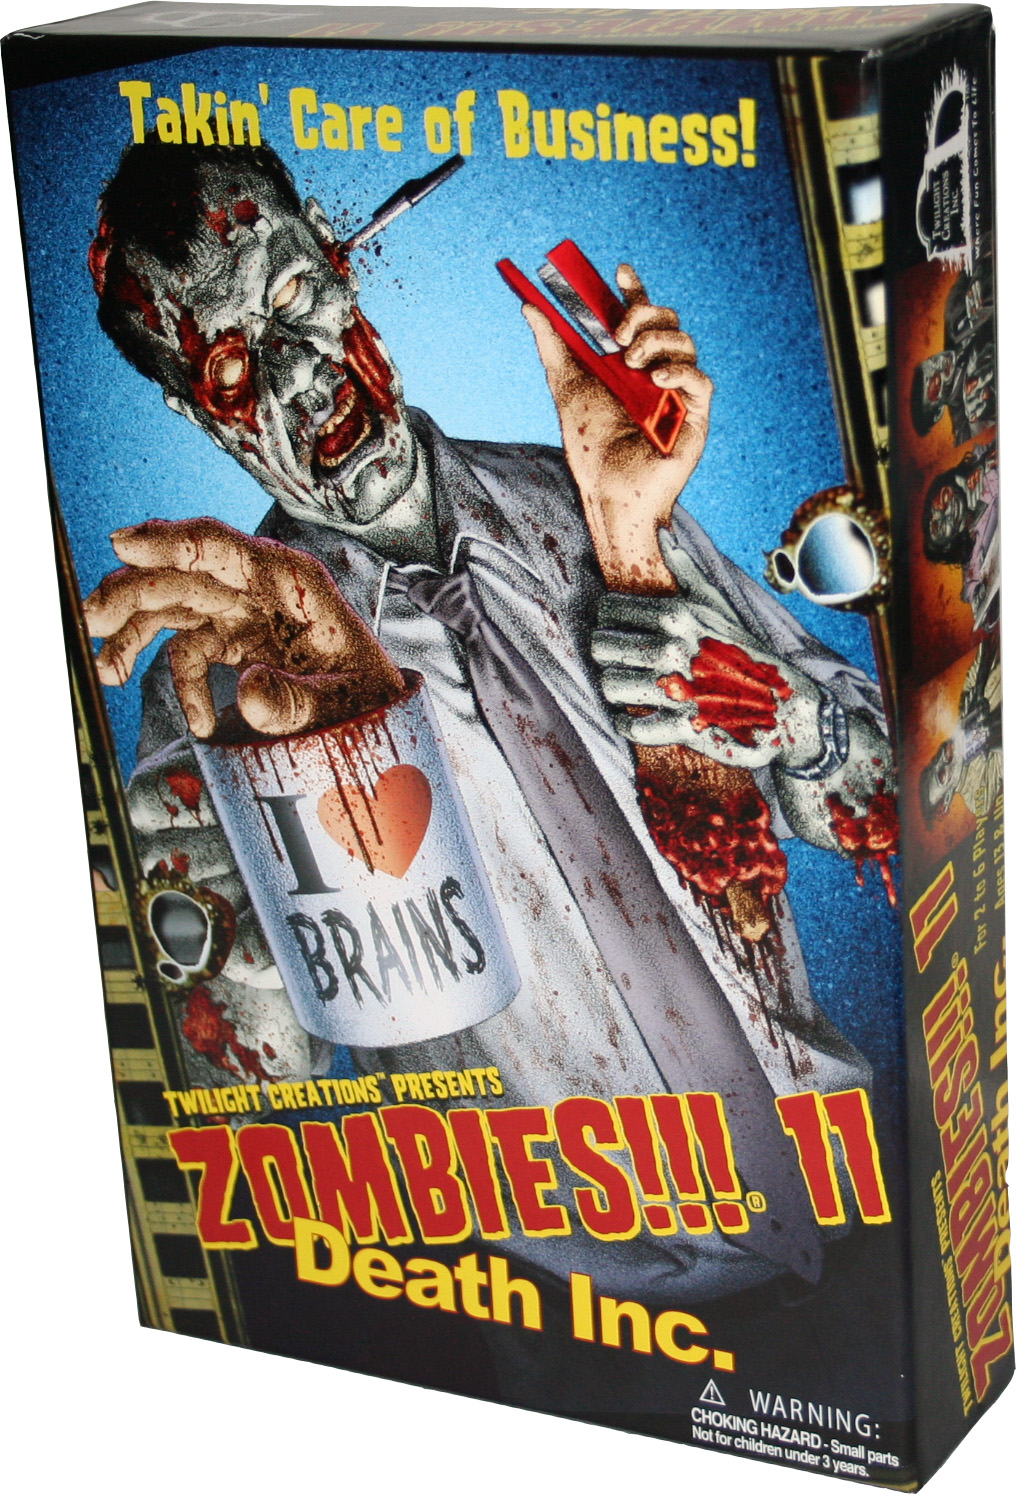 Zombies!!!: 11 - Death Inc. Box Front